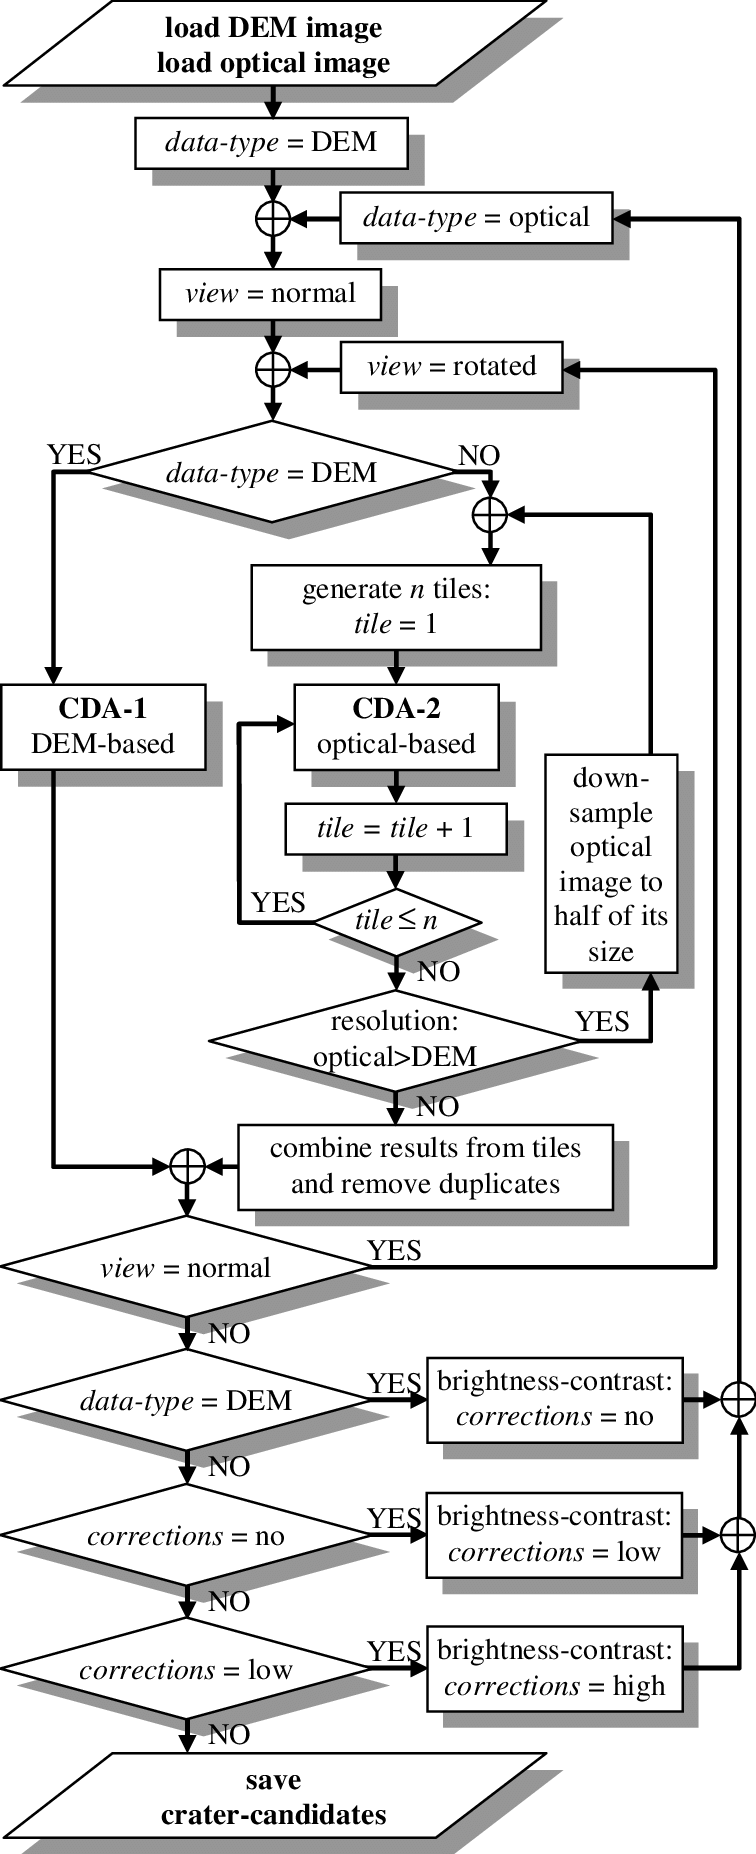 Schematic flow diagram of the proposed integrated CDA